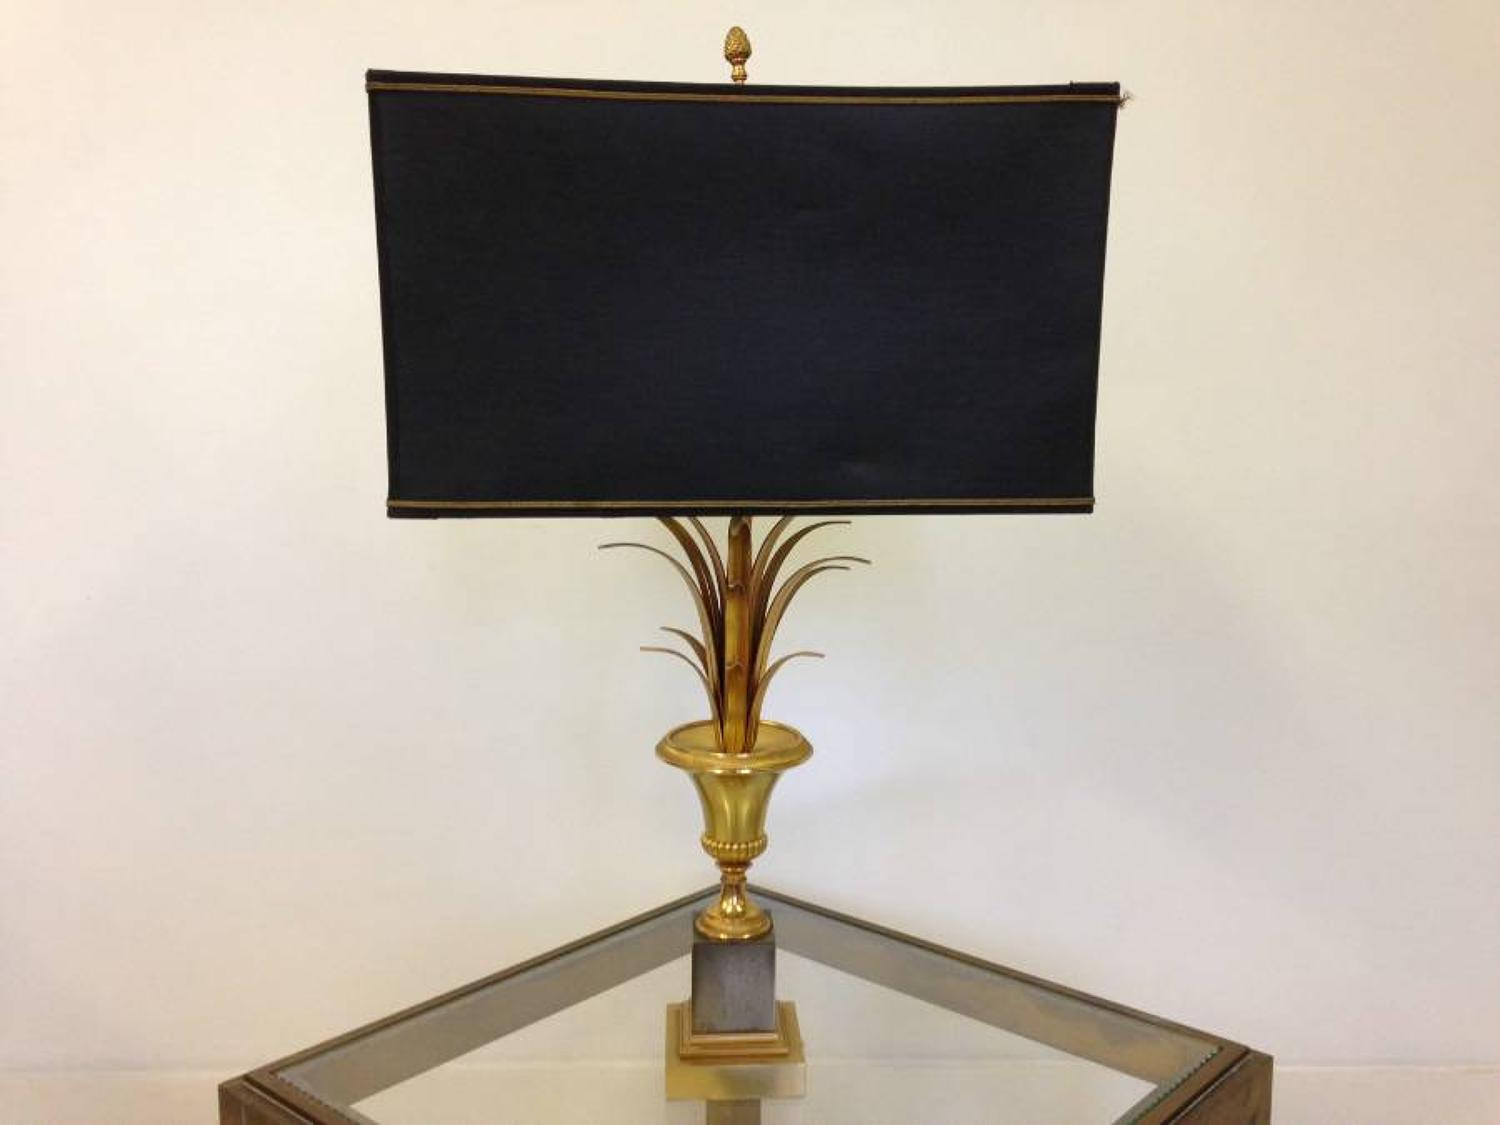 Brass pineapple leaf table lamp